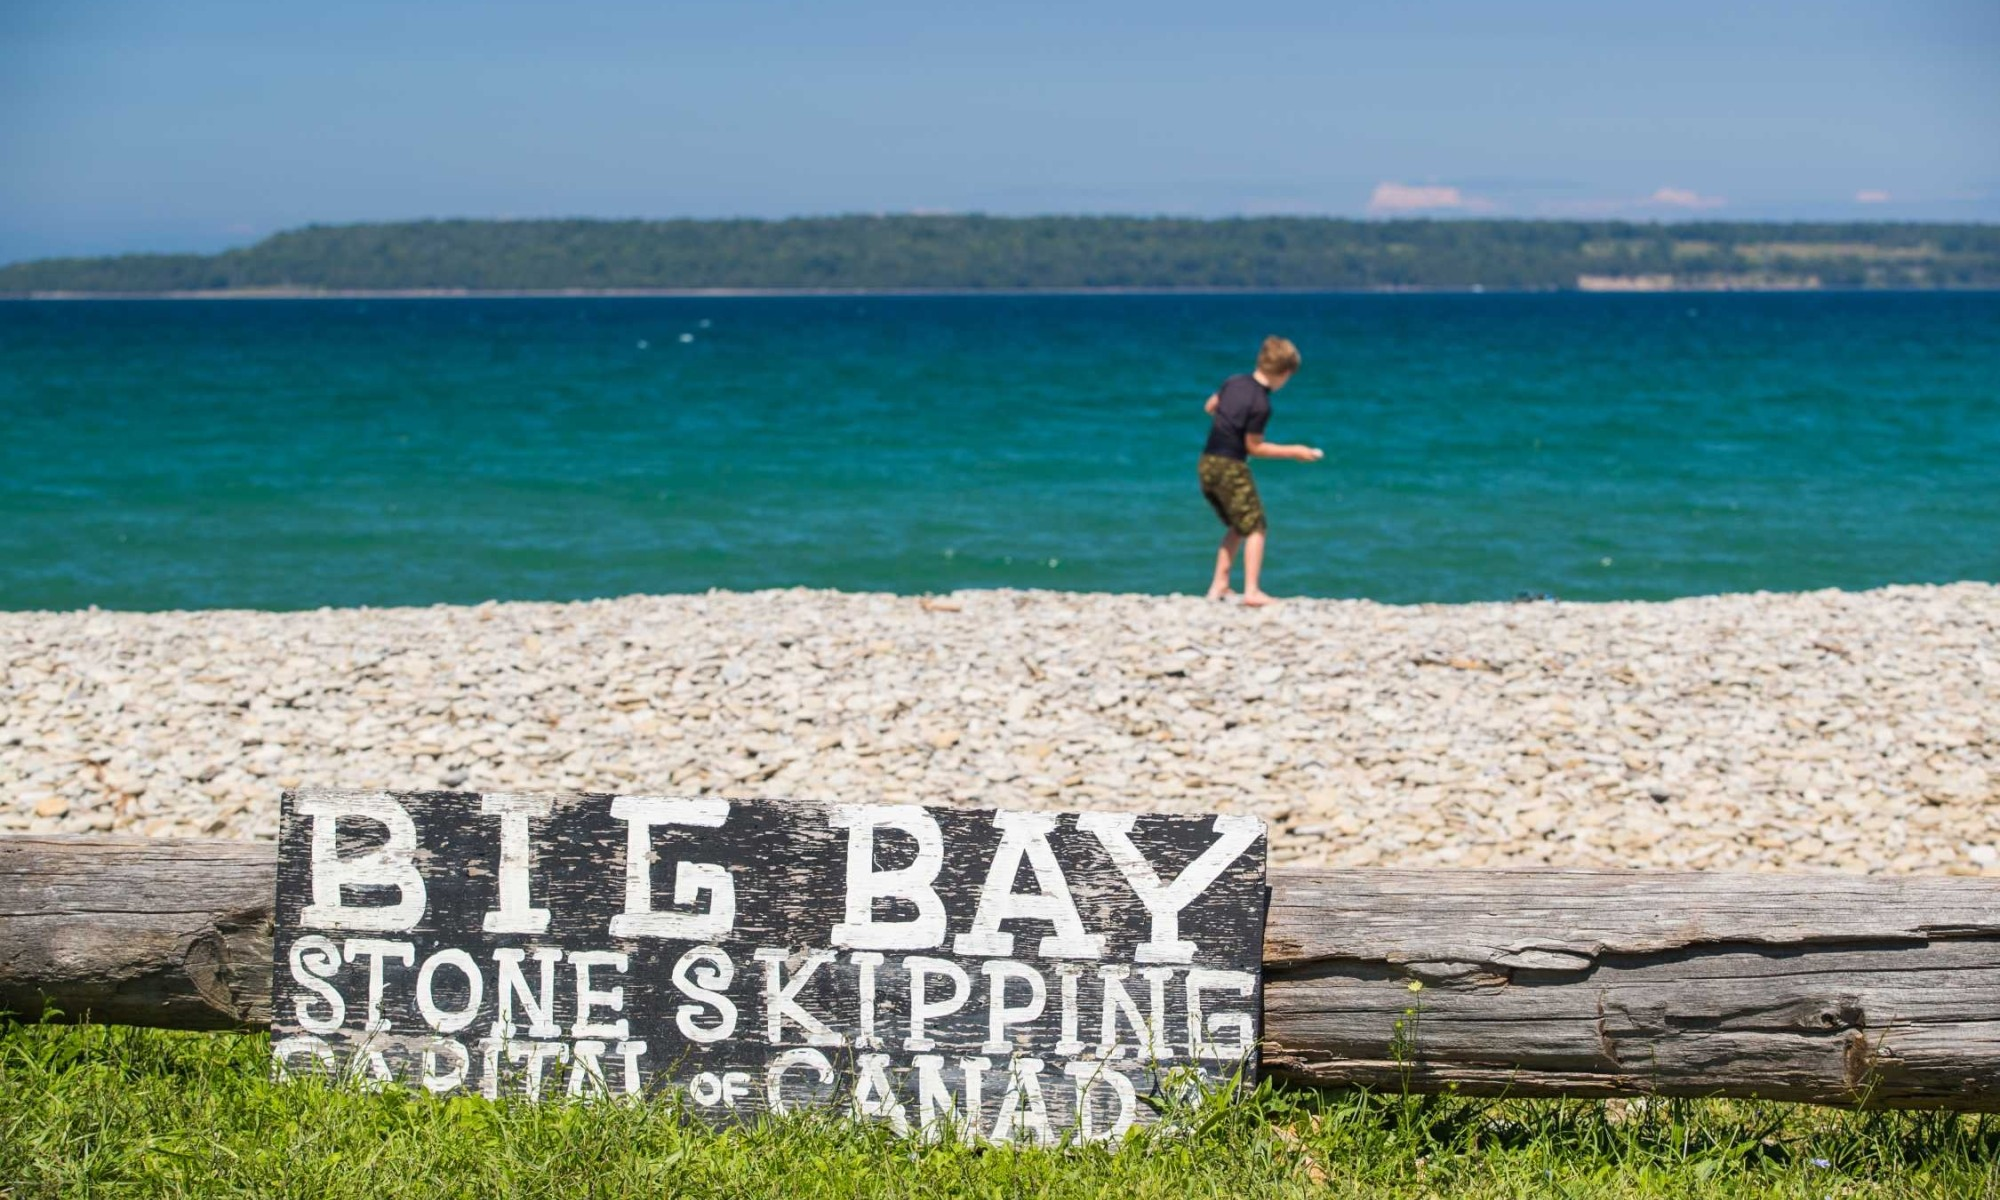 Big Bay stone skipping sign with young boy skipping rocks